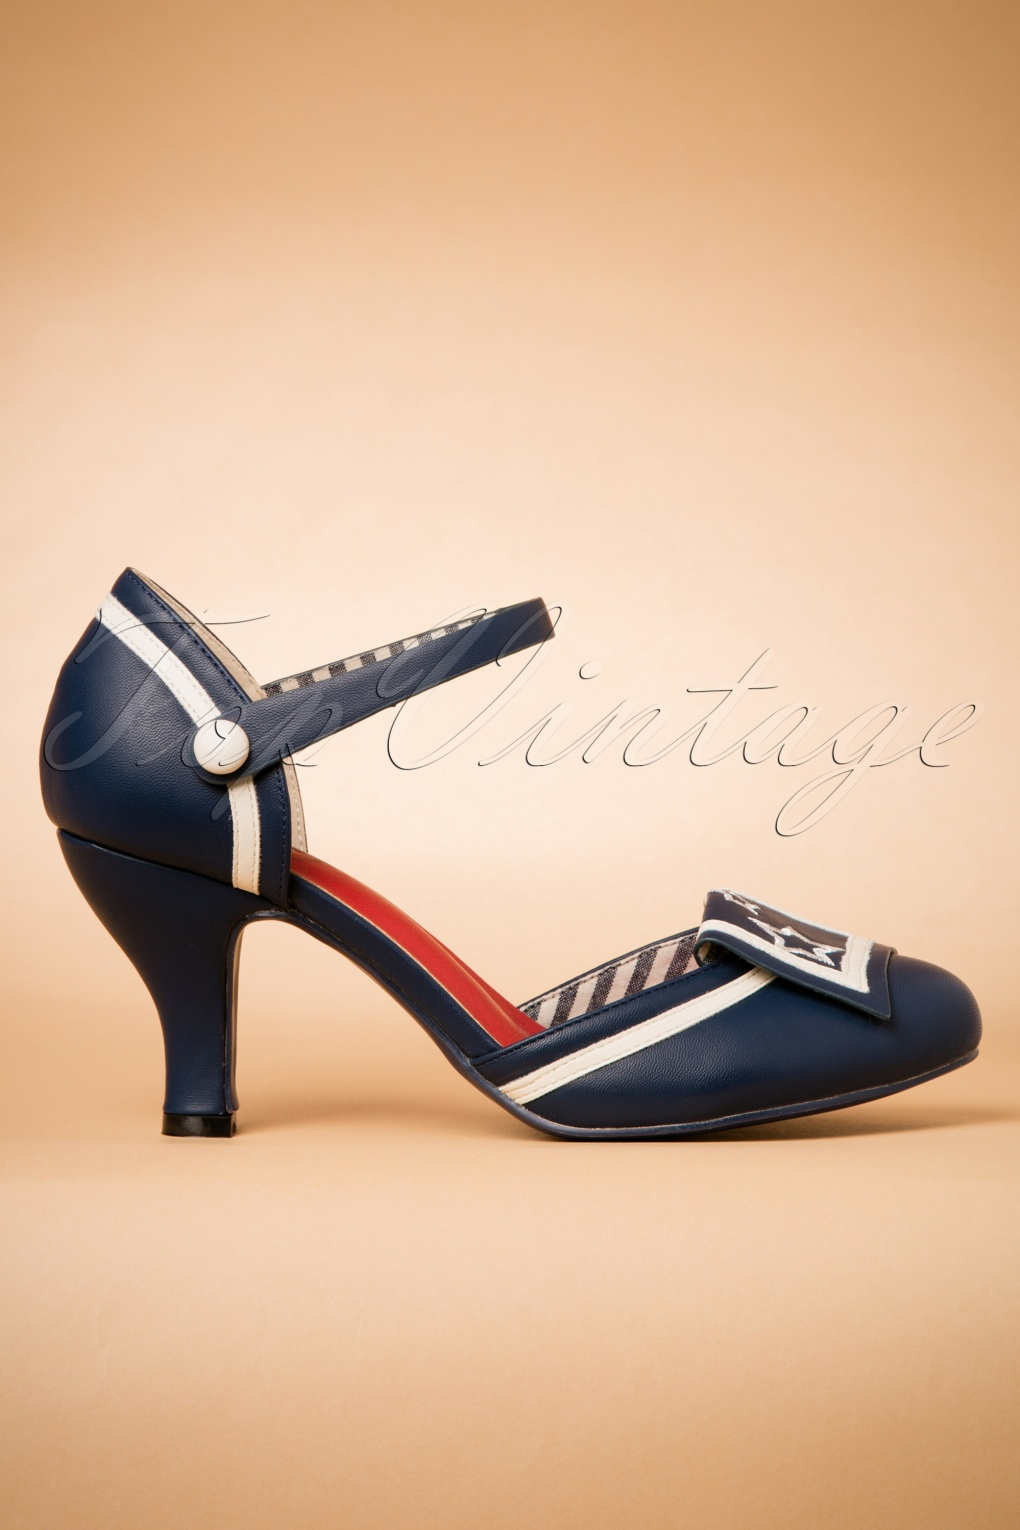 Pin Up Shoes- Heels, Pumps & Flats 40s Mary Jane Beaufort Spice Pumps in Navy £47.58 AT vintagedancer.com